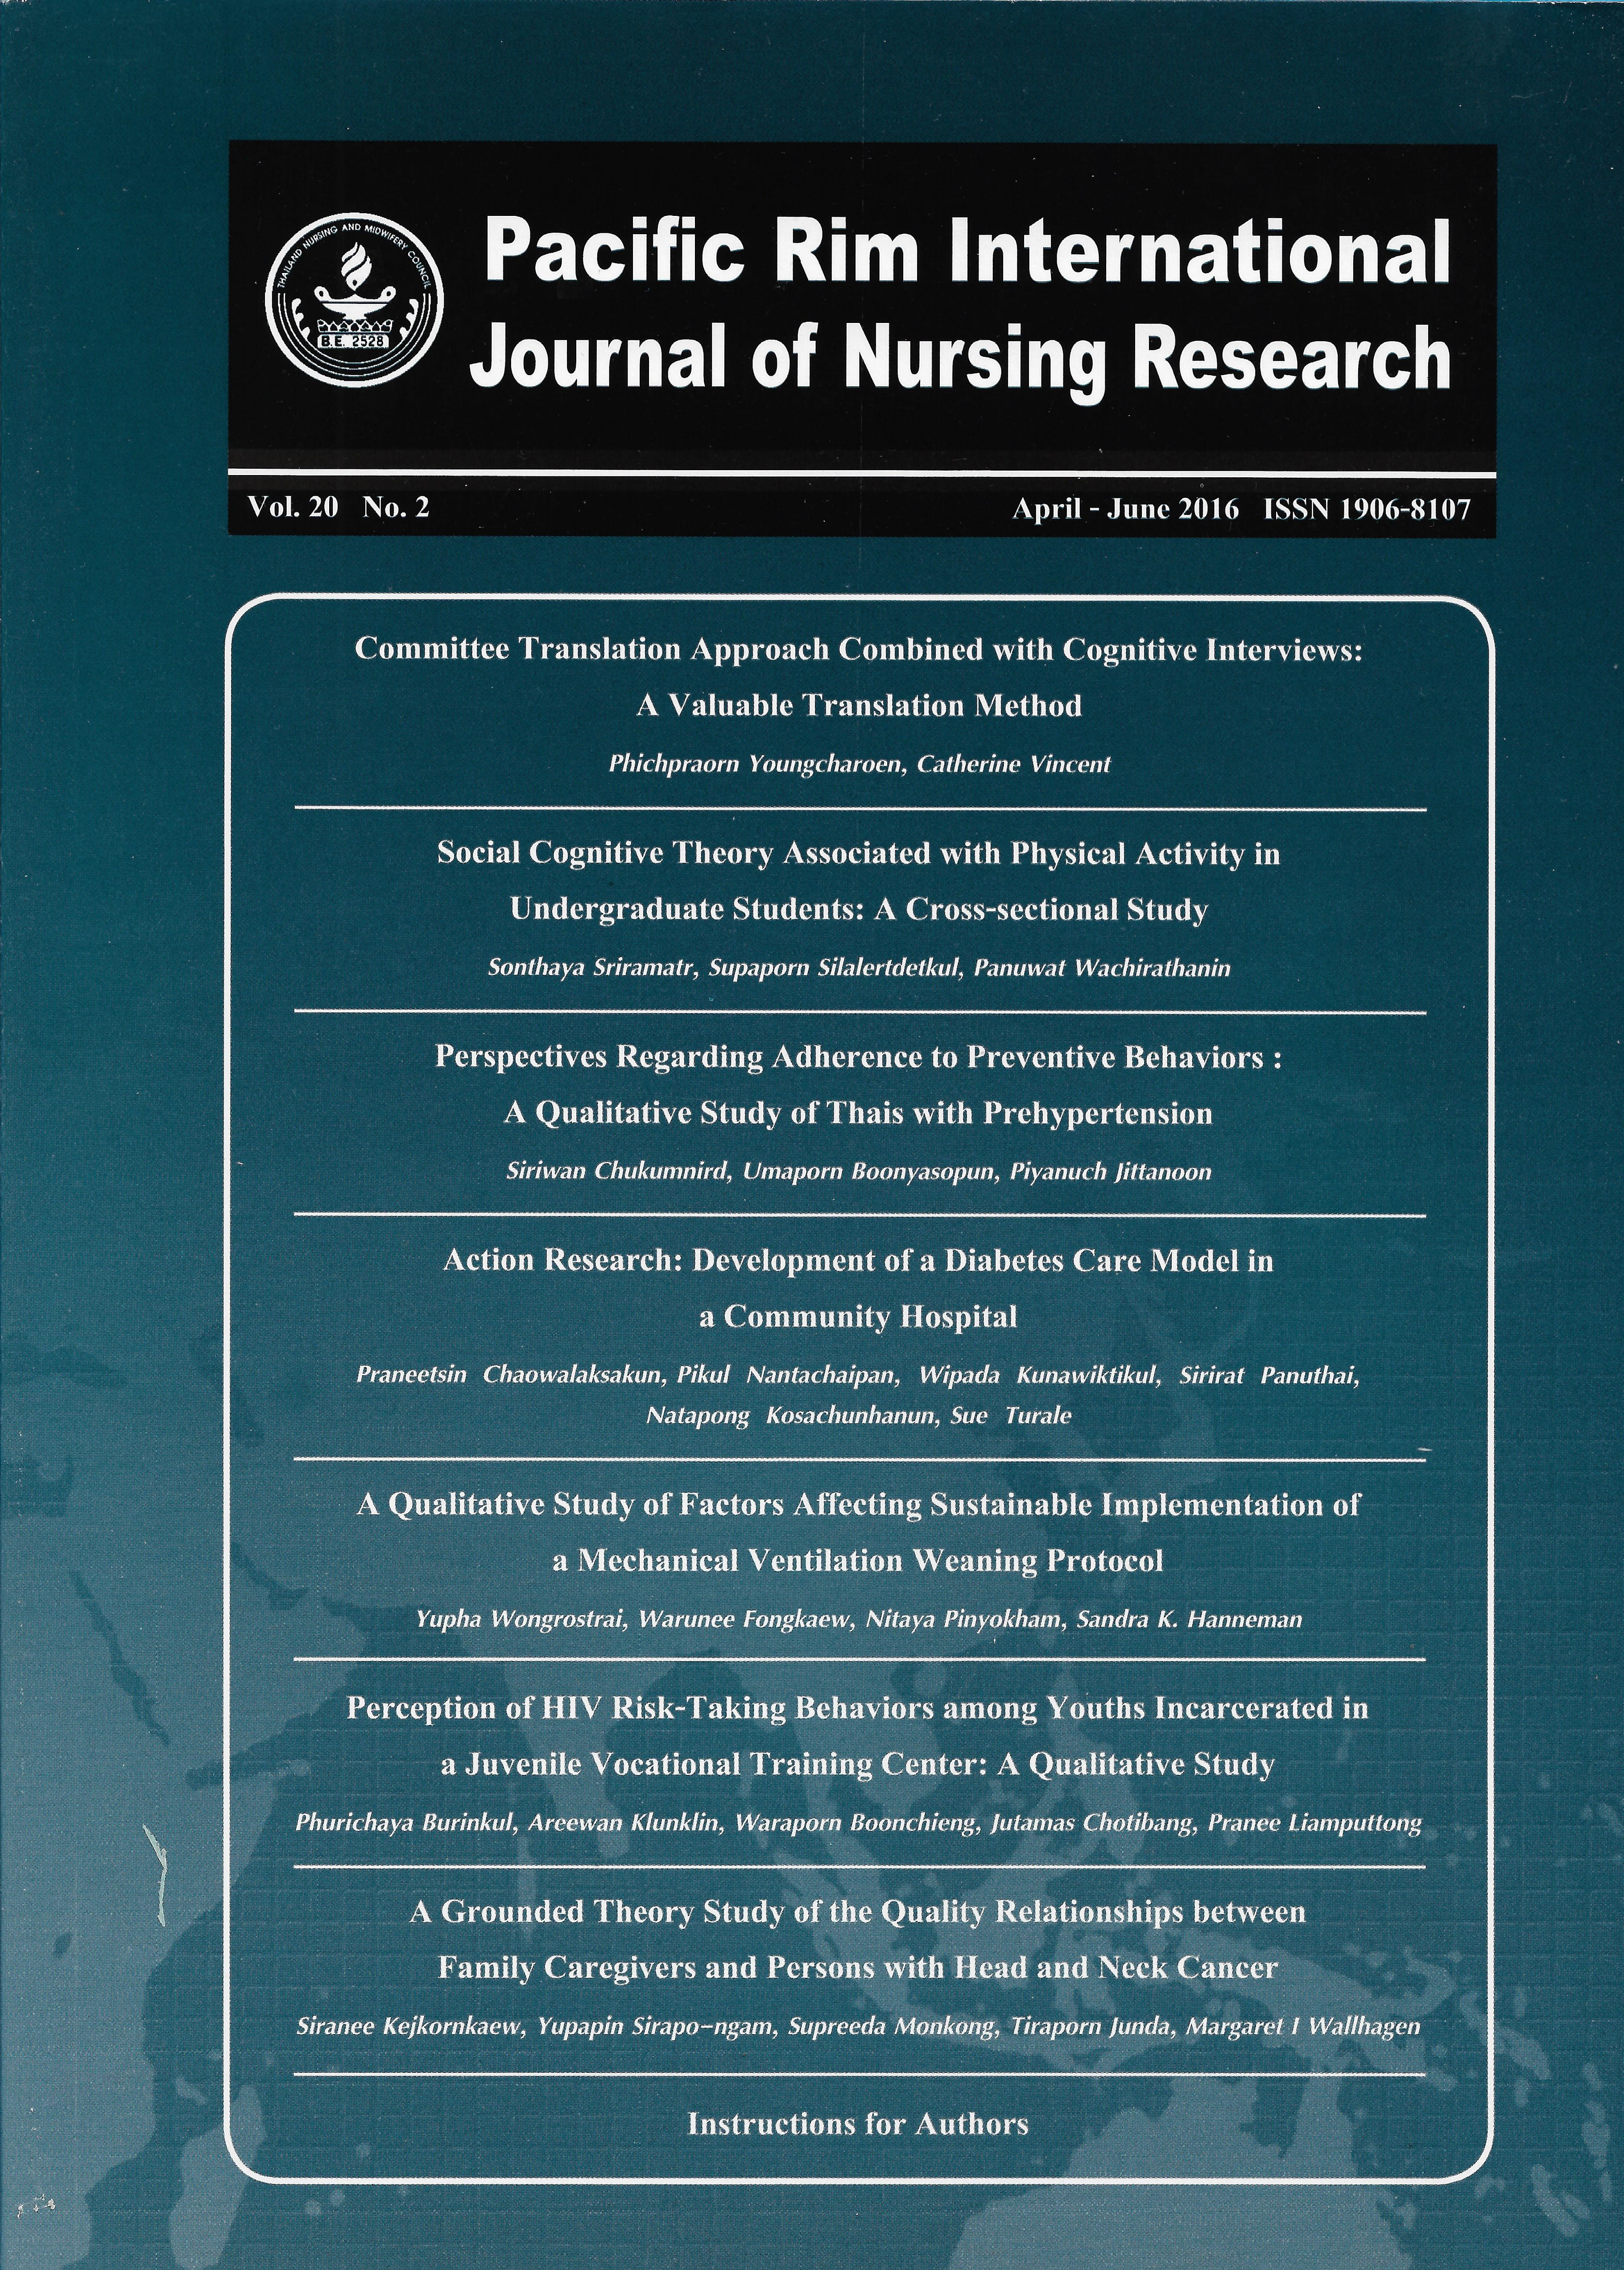 007 Cover Issue 4245 En Us Nursing Research Articles On Diabetes Pdf Amazing Full